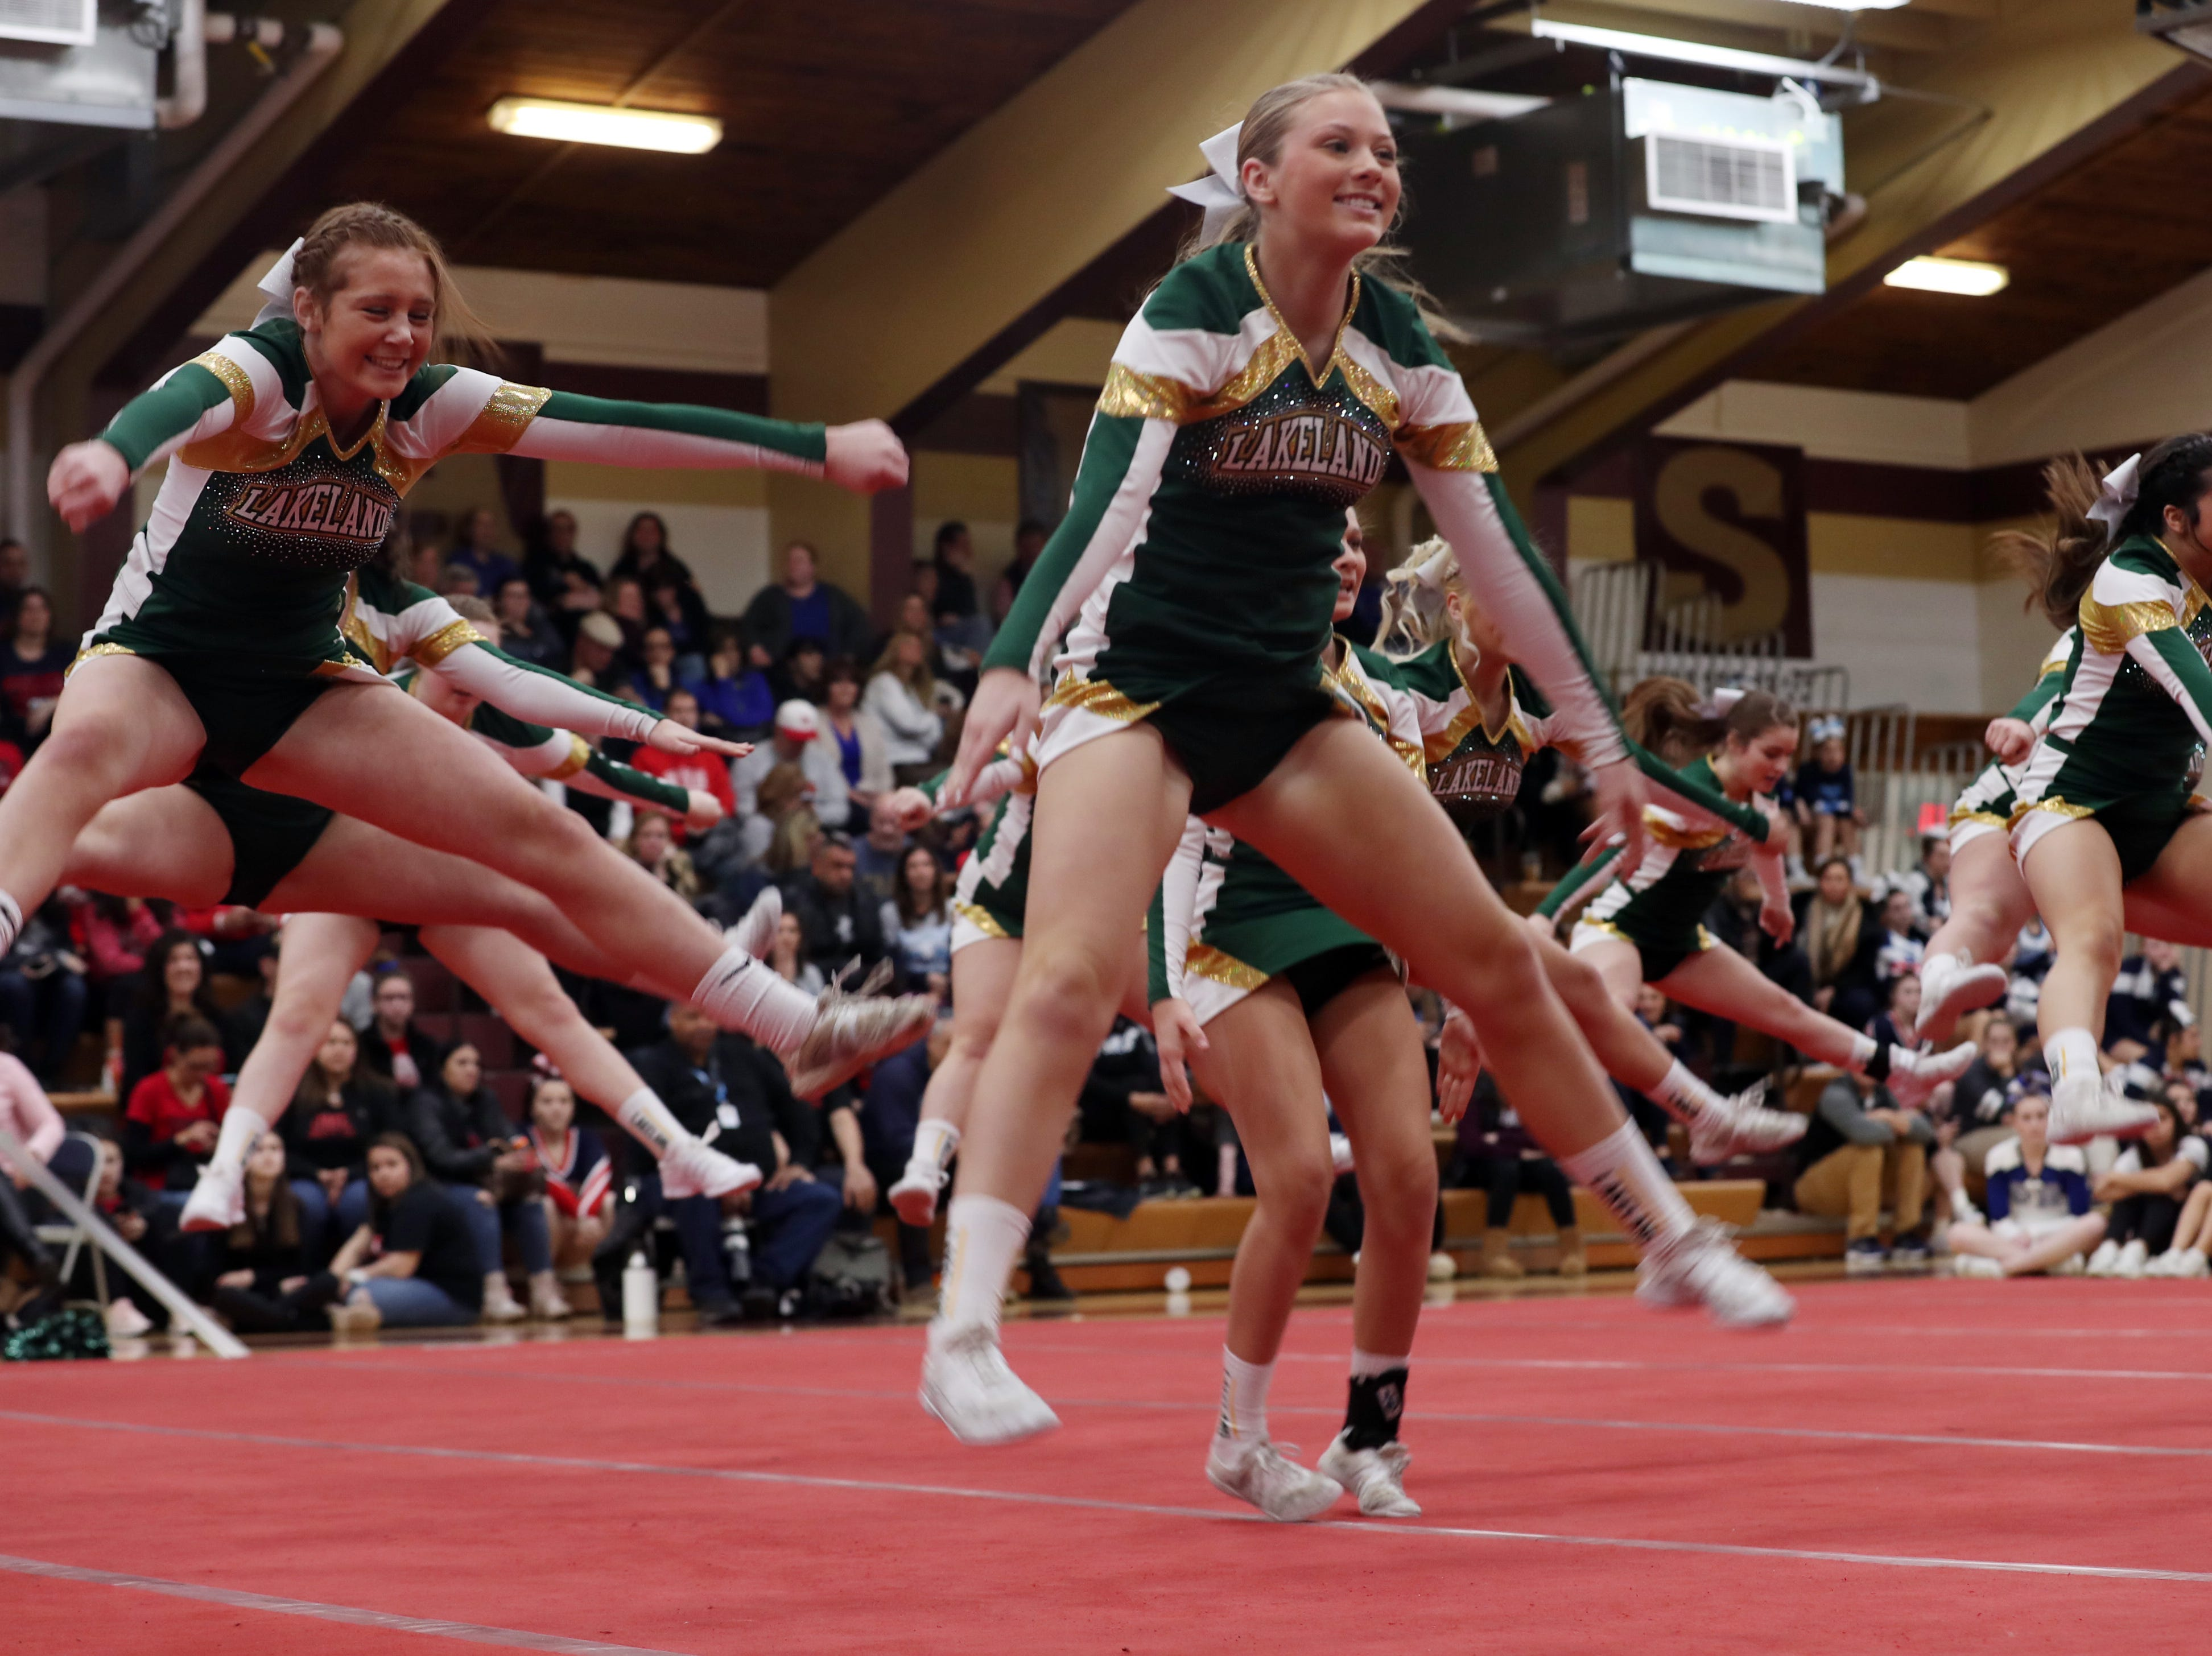 Lakeland High School competes during the Section 1 cheerleading championships at Arlington High School in Freedom Plains Feb. 16, 2019.